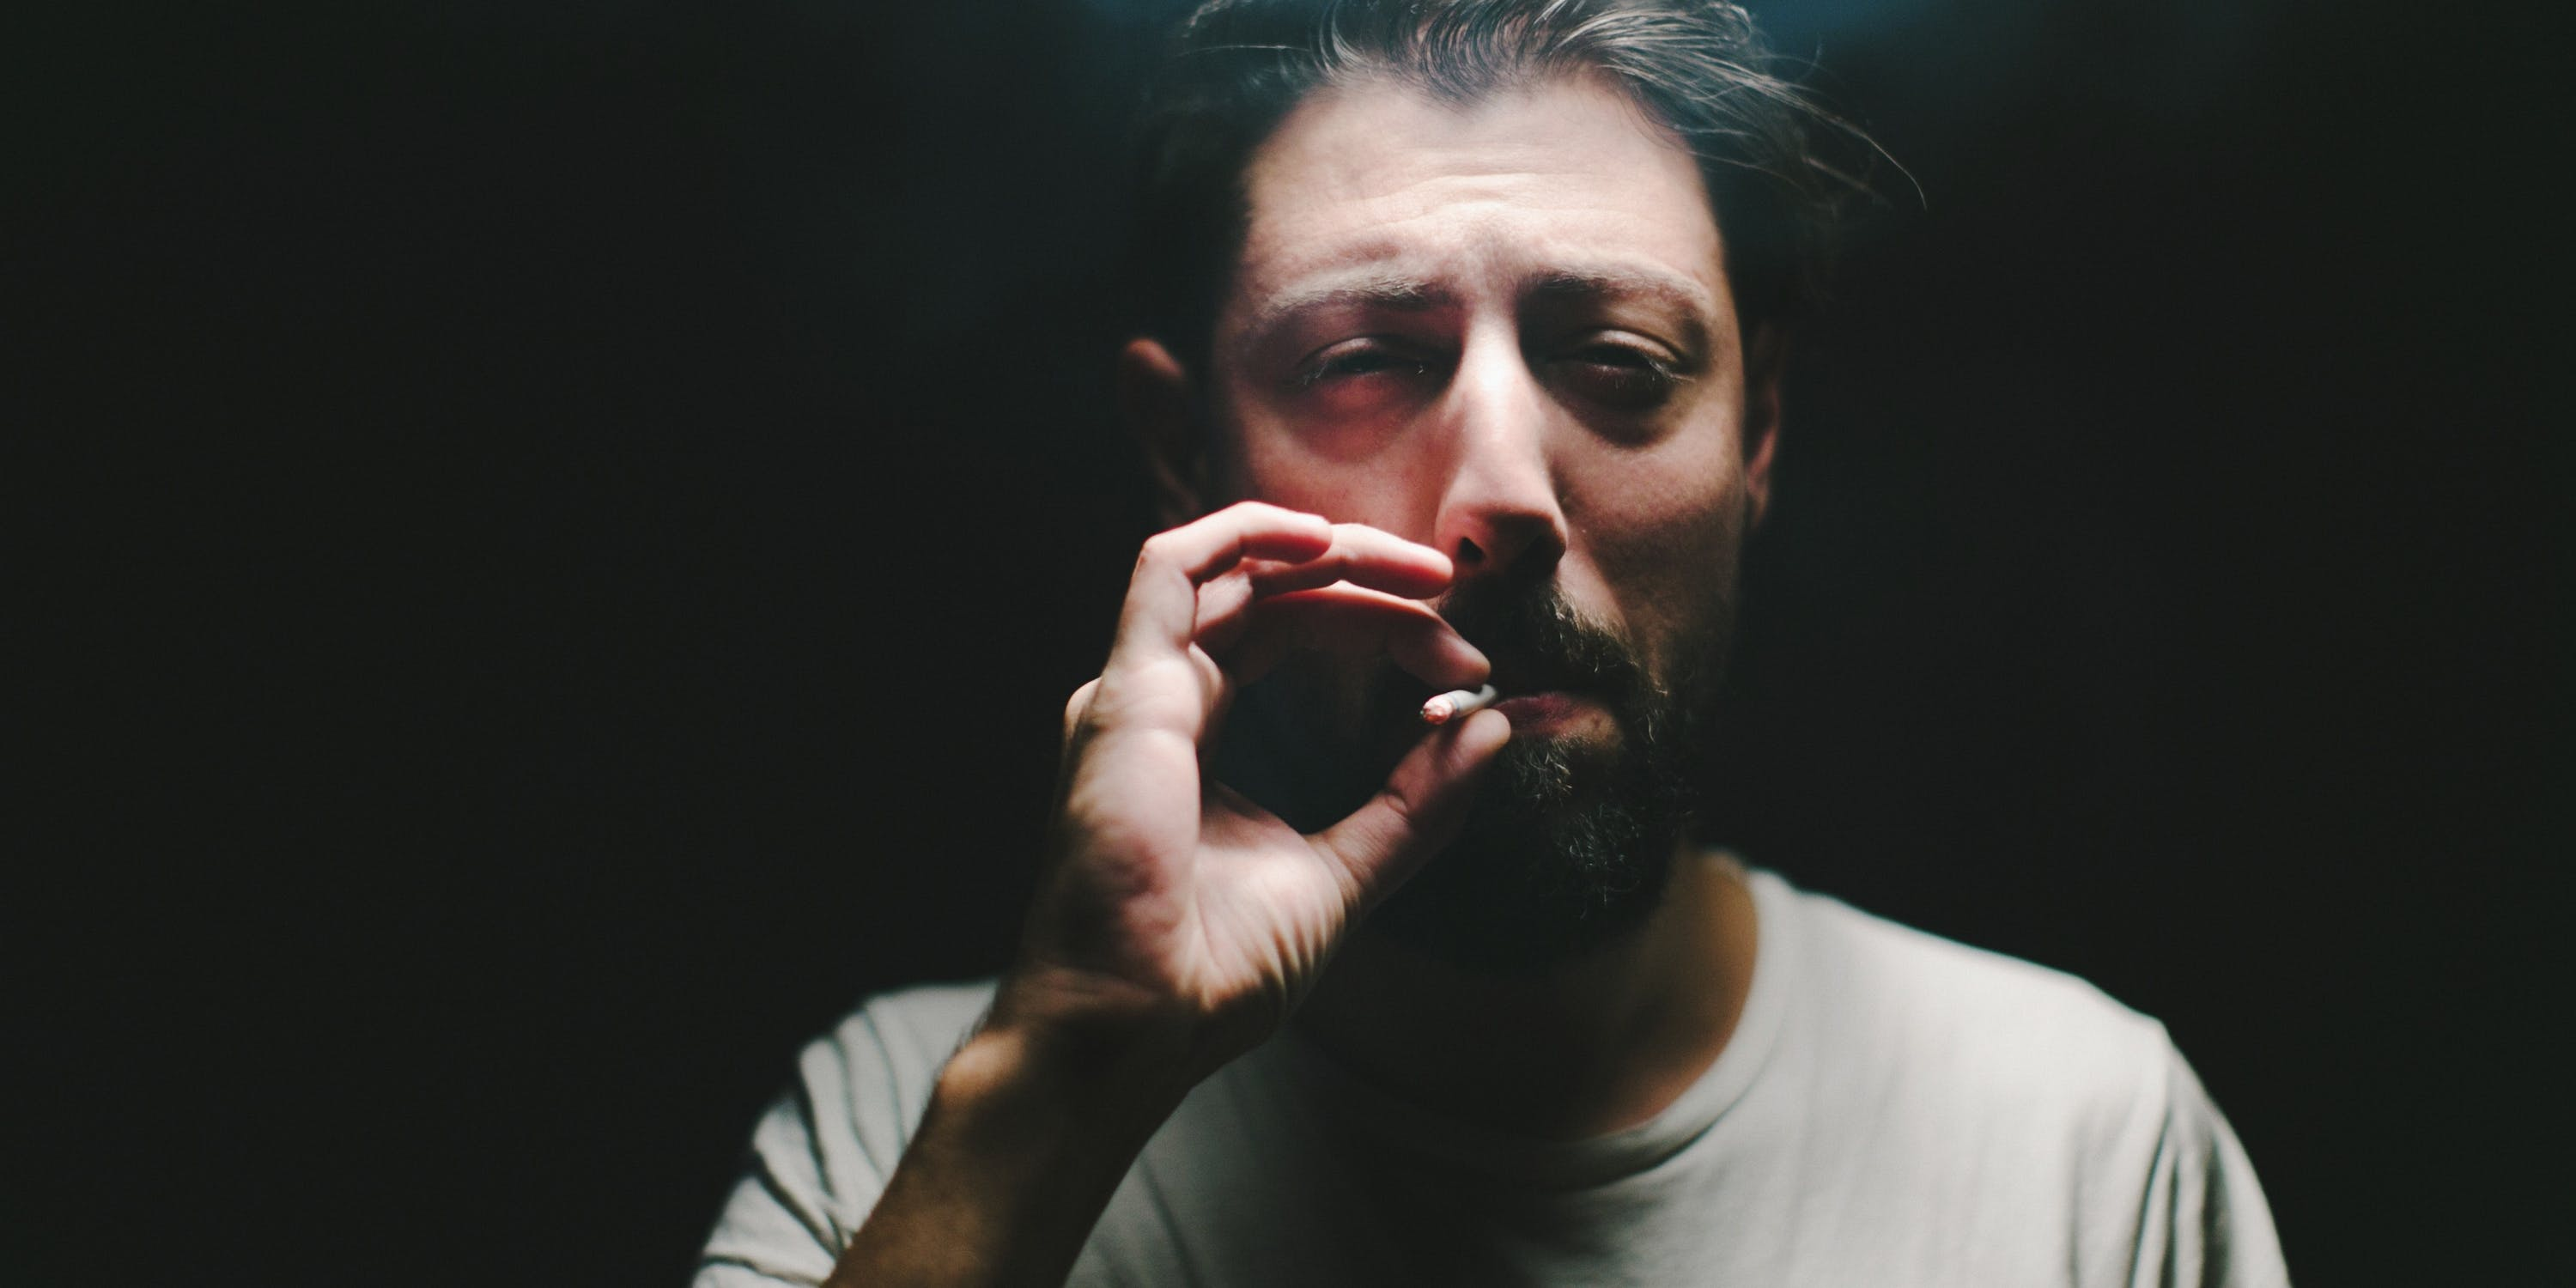 Close-Up Of Man Smoking a joint